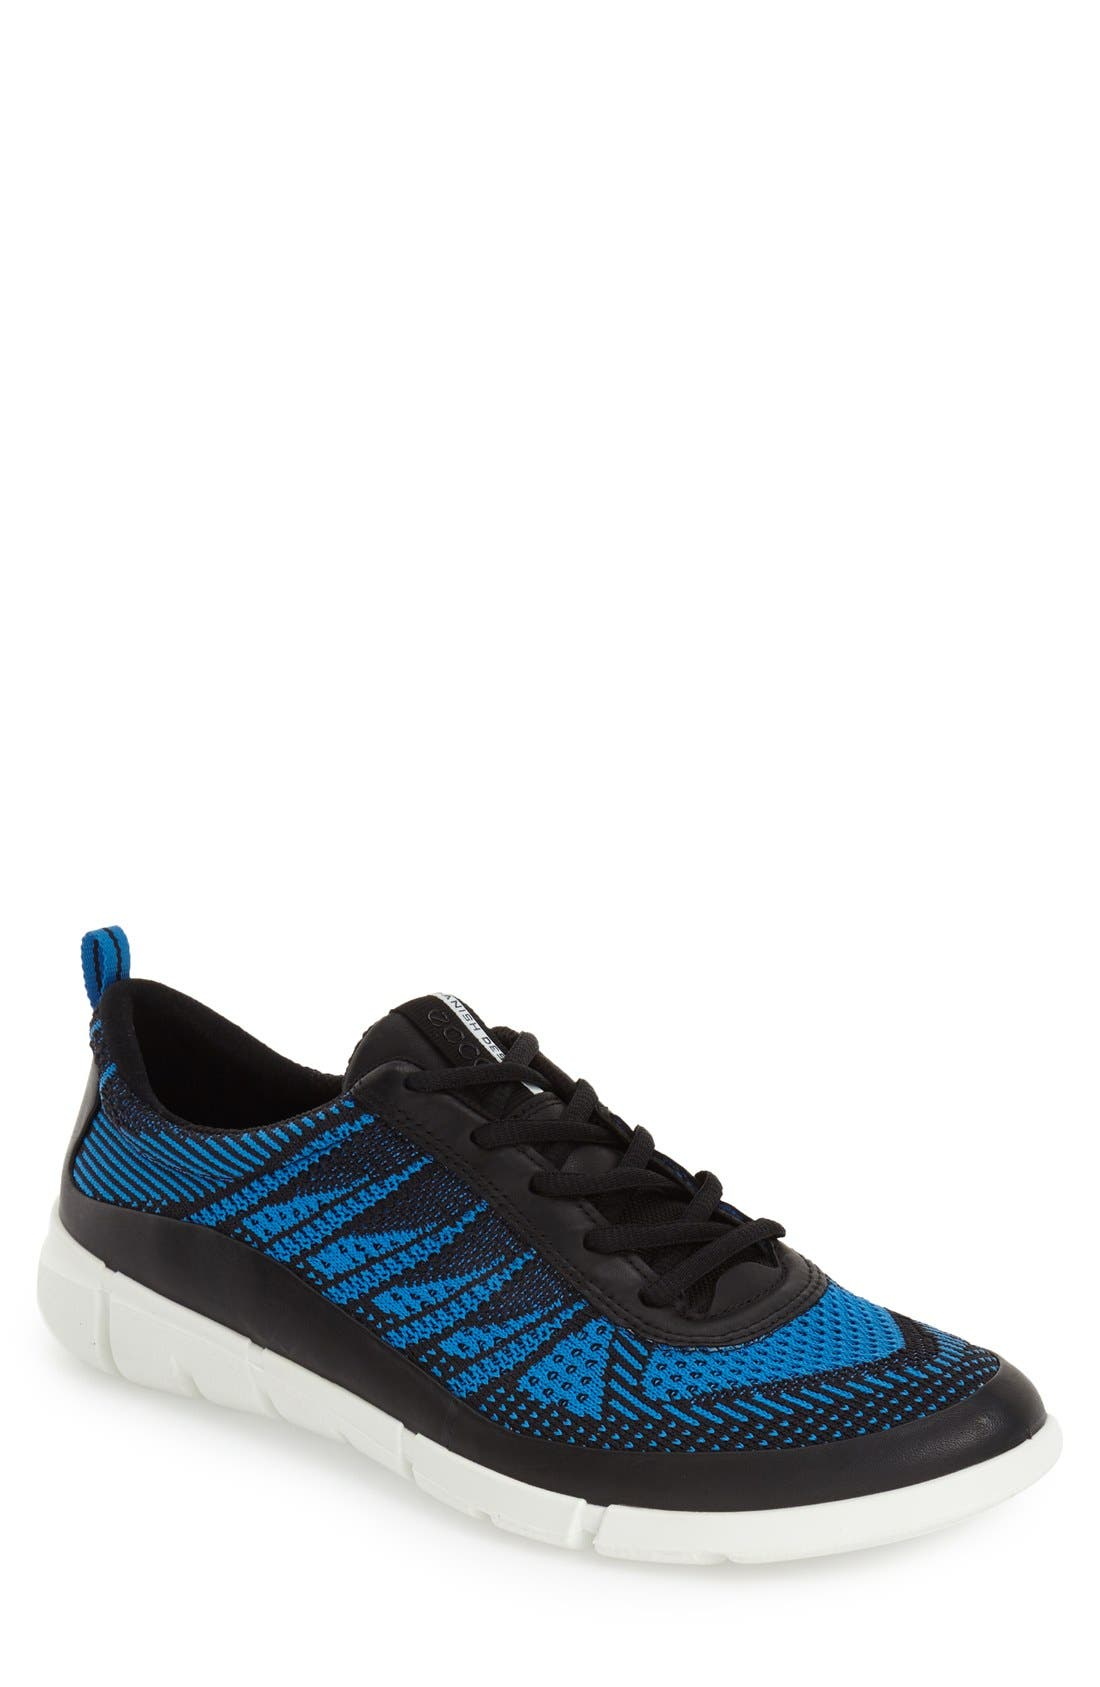 ECCO 'Intrinsic Knit' Sneaker